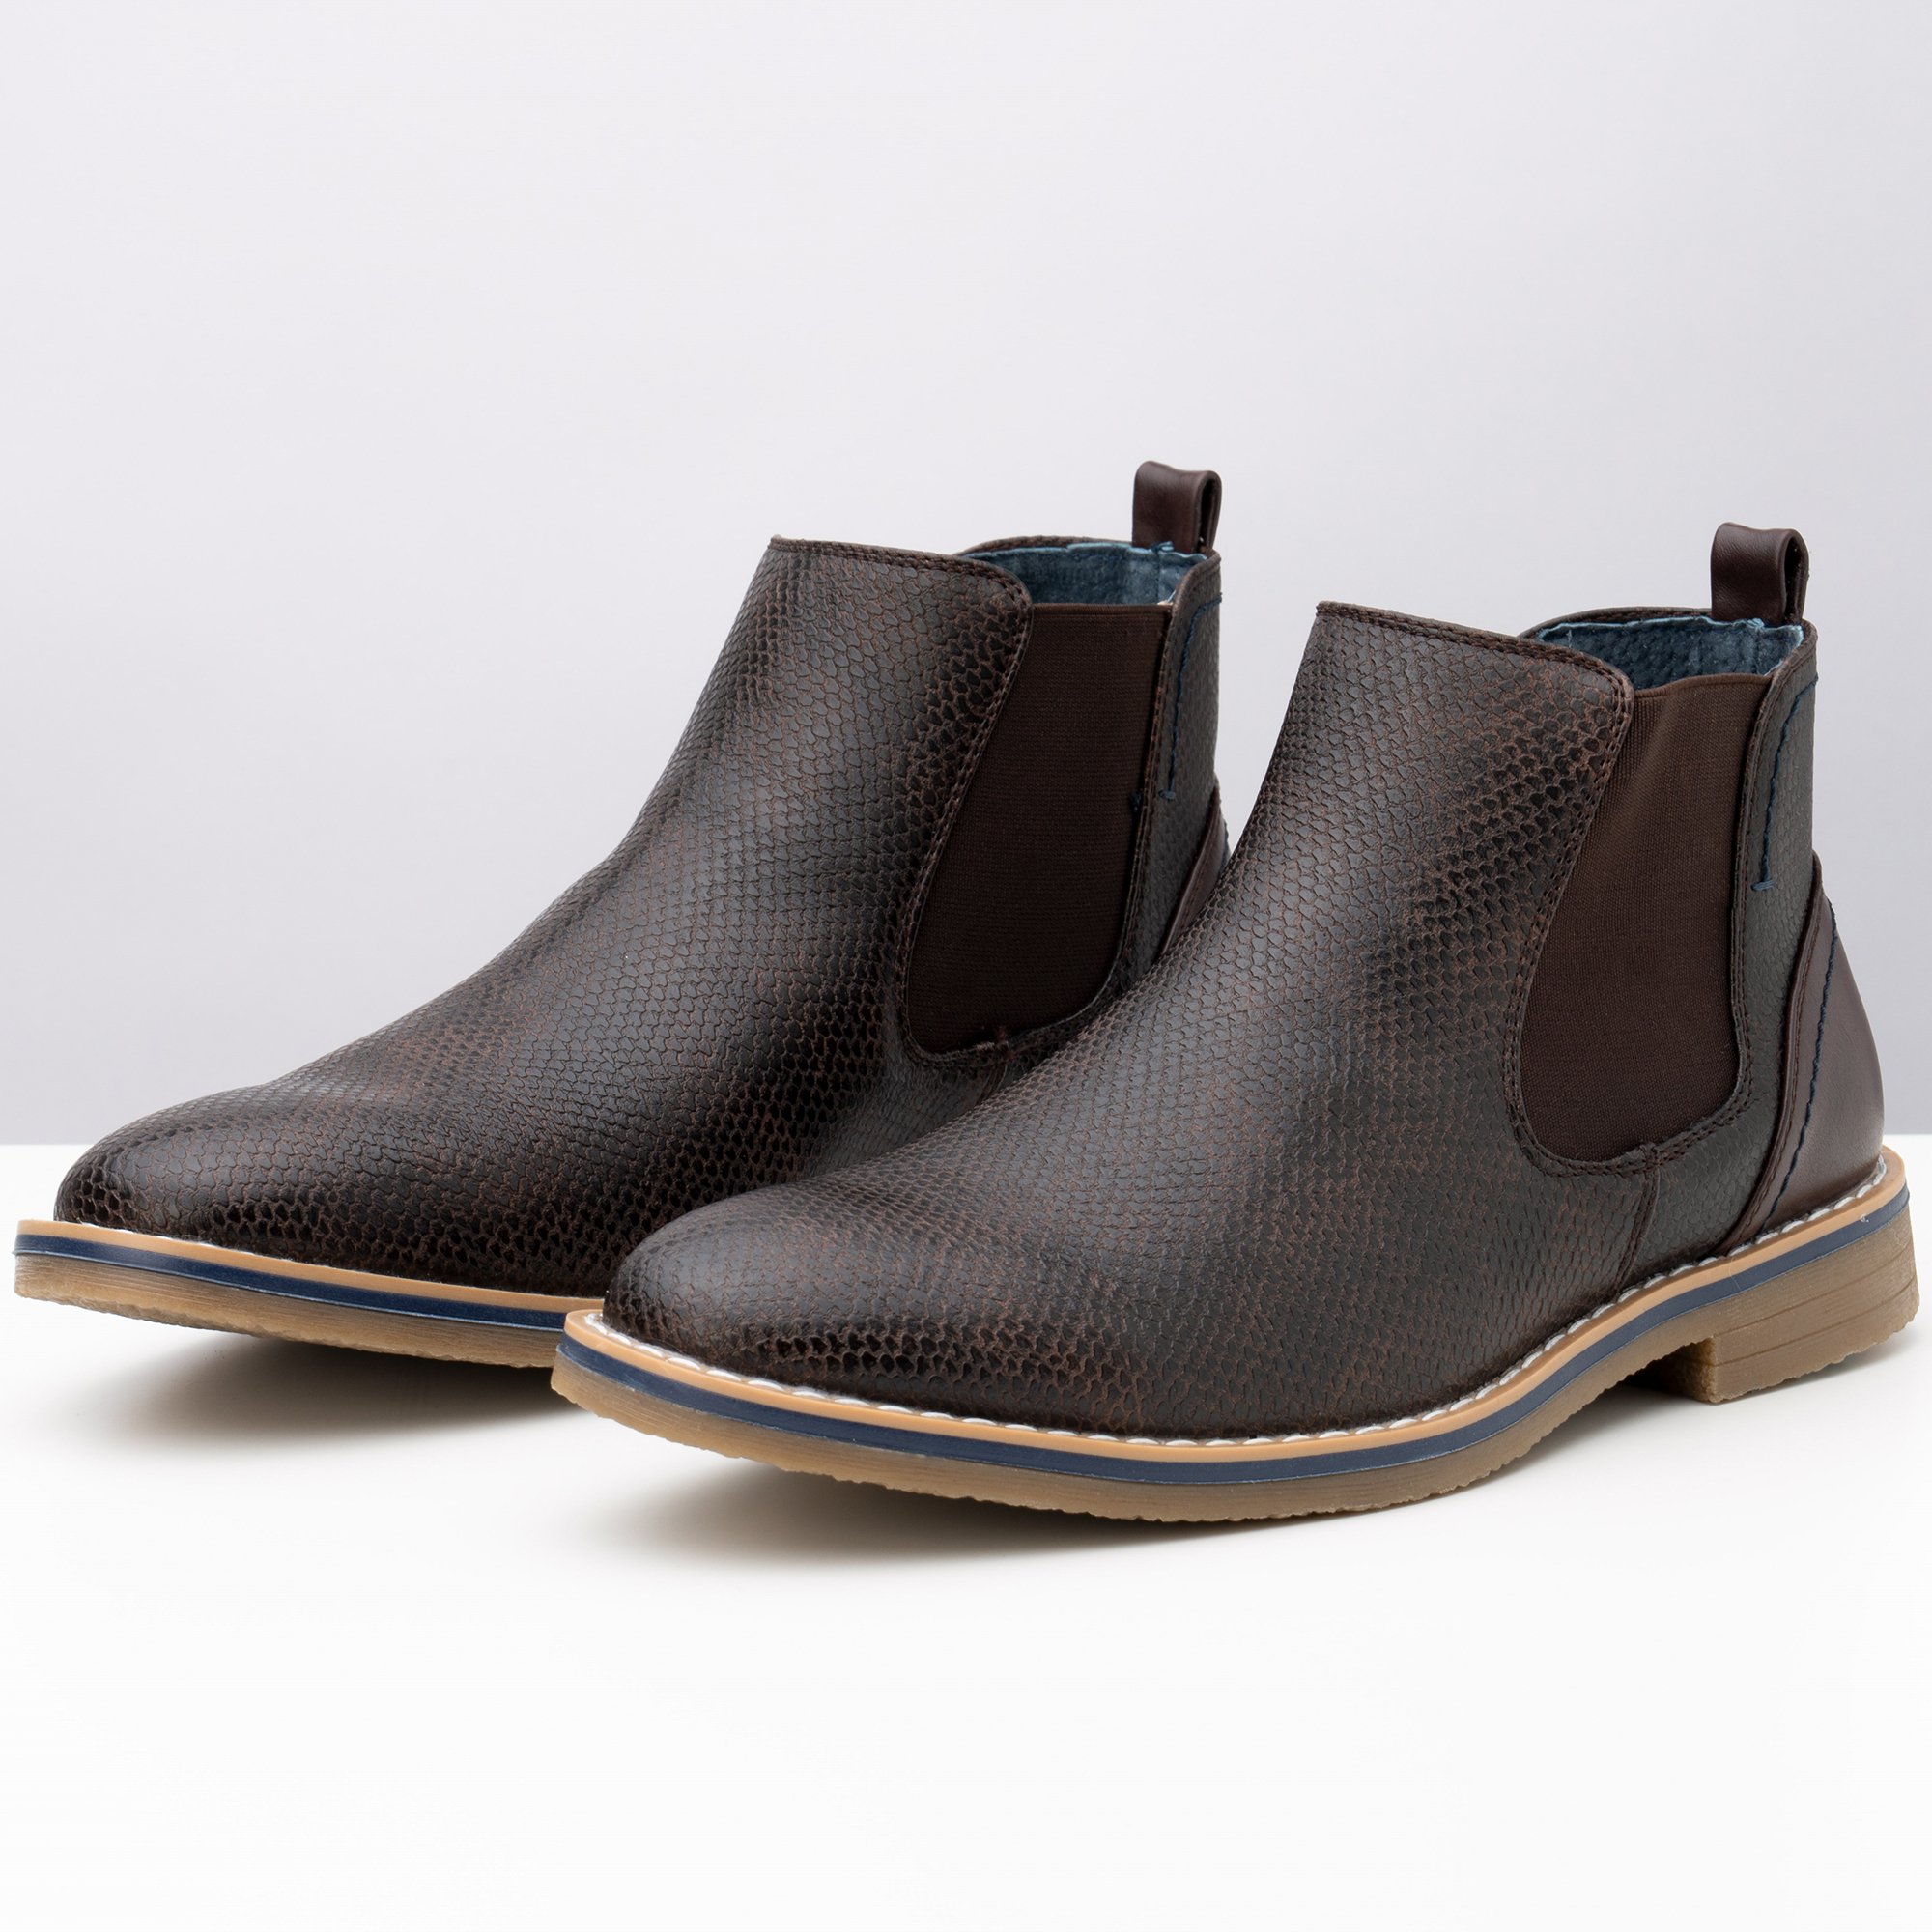 Alpine-Swiss-Mens-Nash-Chelsea-Boots-Snakeskin-Ankle-Boot-Genuine-Leather-Lined miniature 23